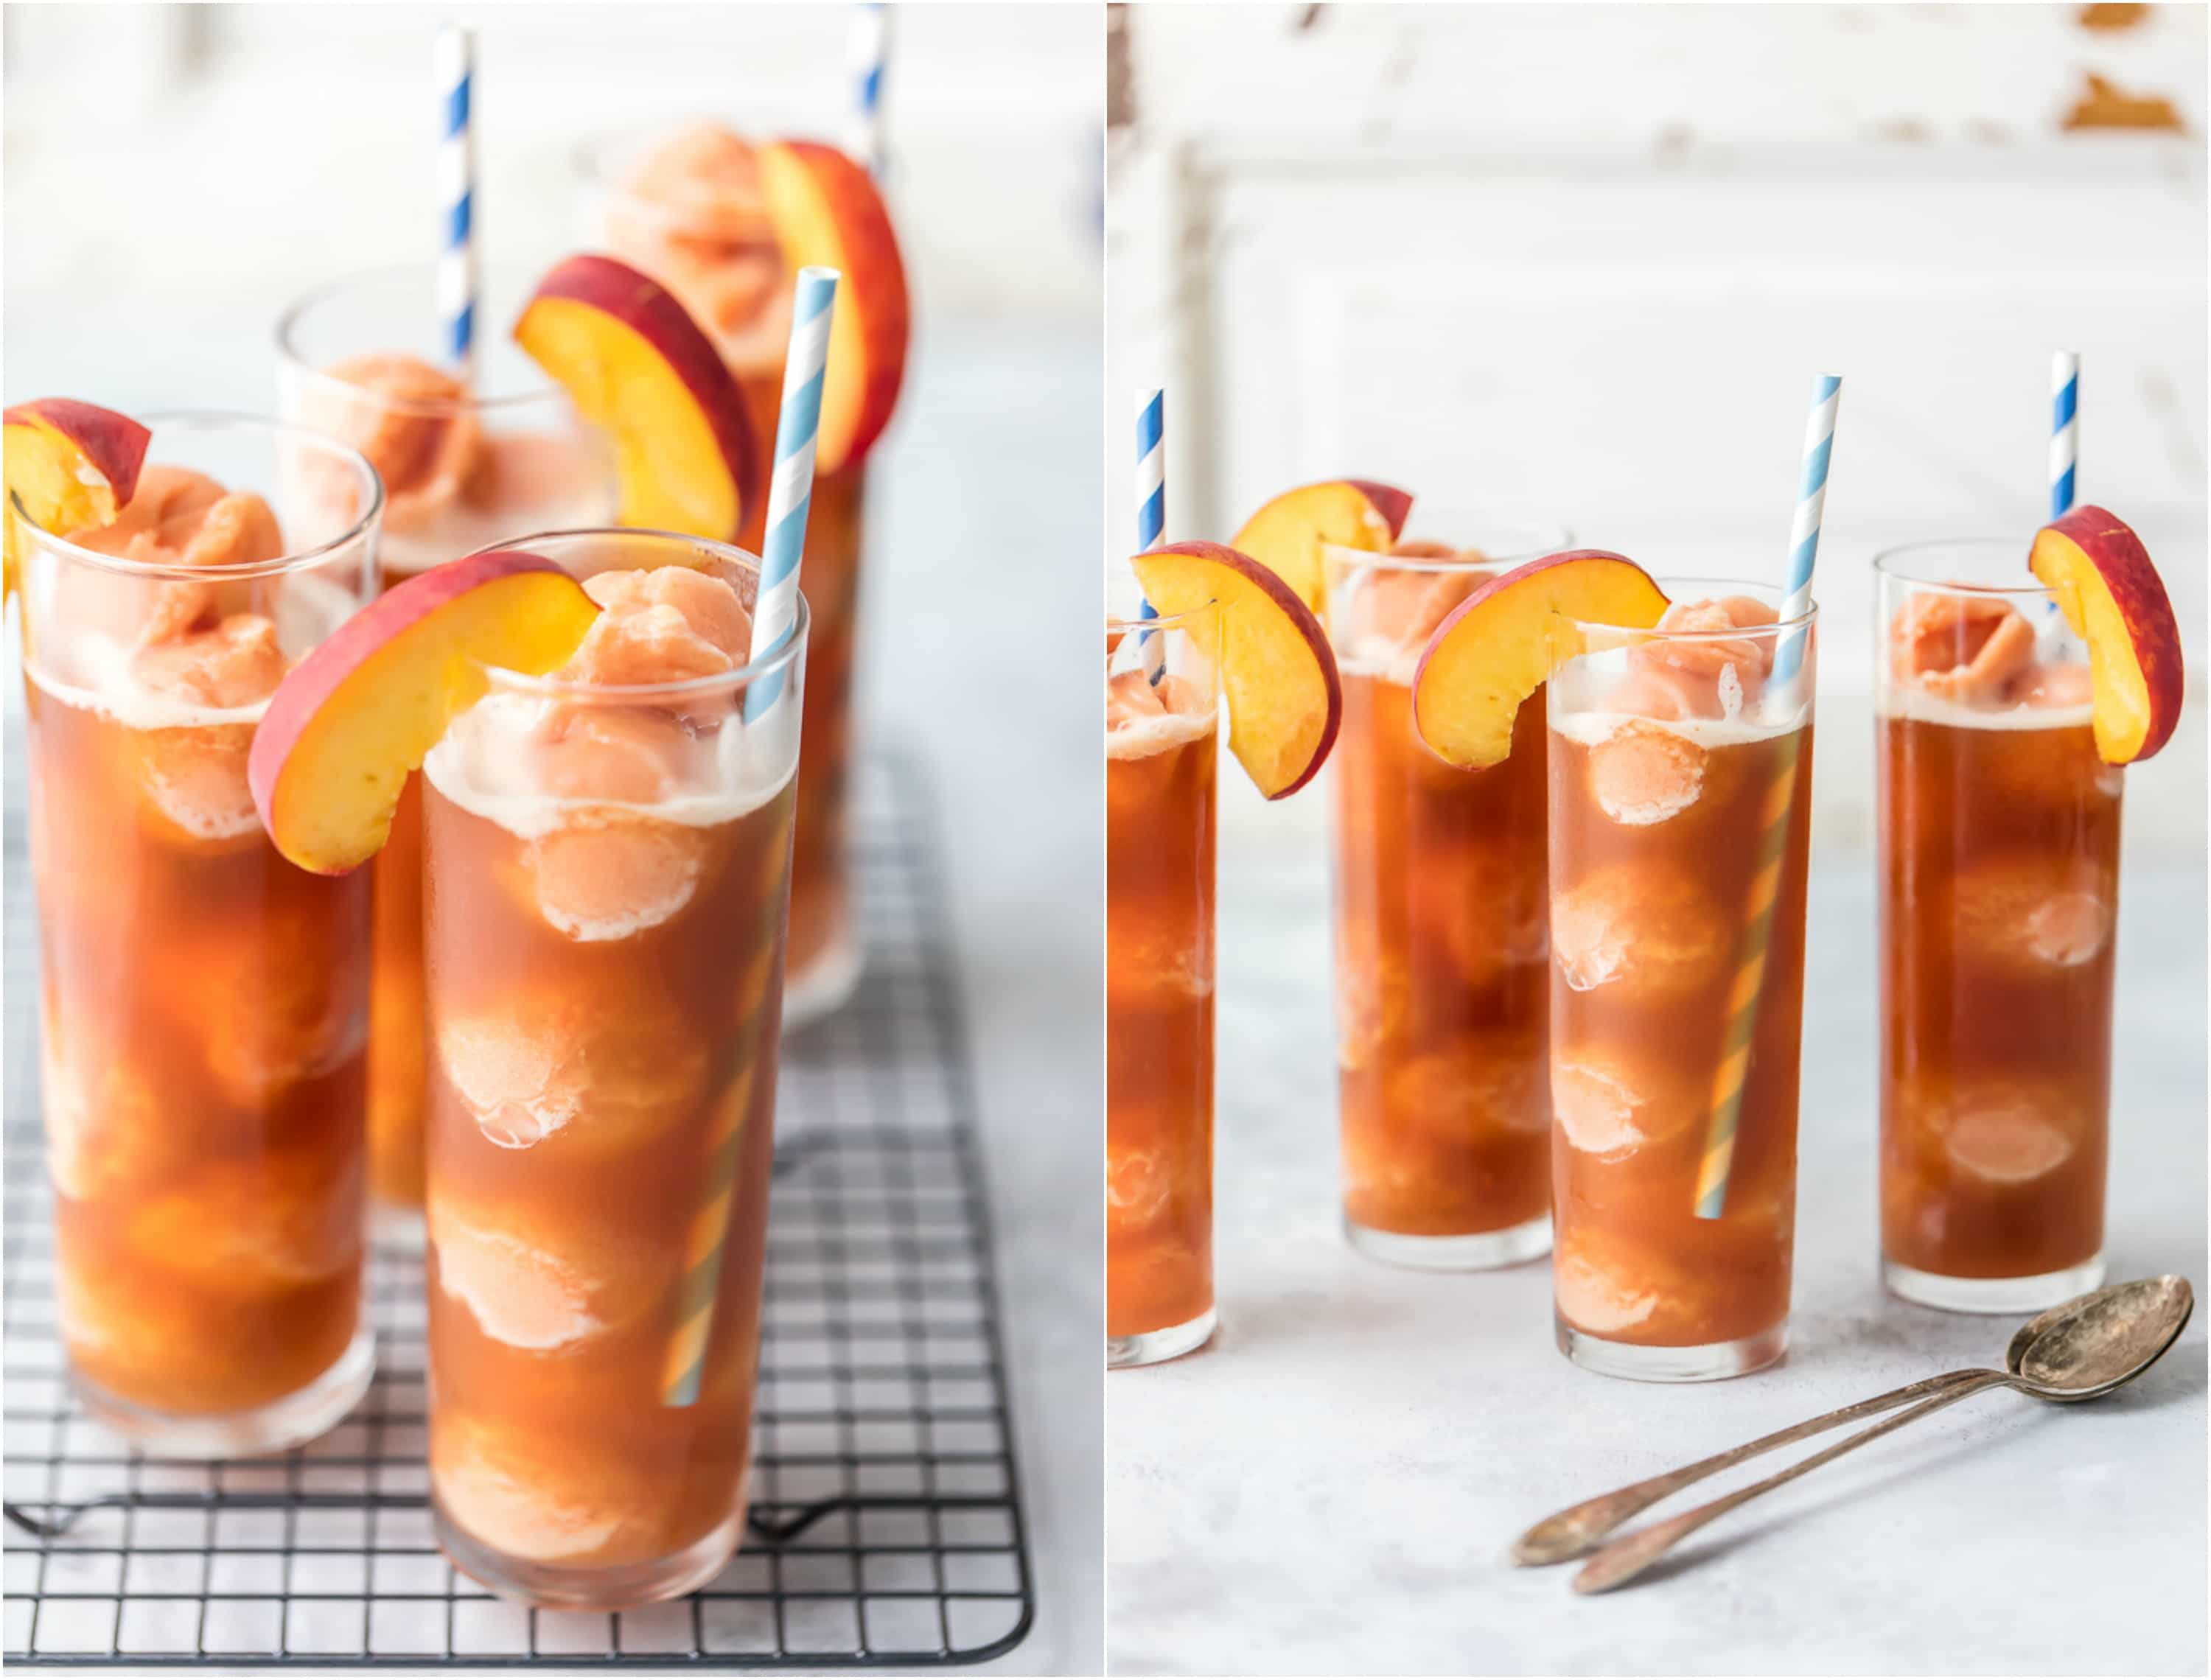 Cool off this Summer with Peach Tea Ice Cream Floats! Fill a tall glass with peach ice cream, sorbet, or sherbet, and top with Iced Tea! Delicious, refreshing, and perfect!